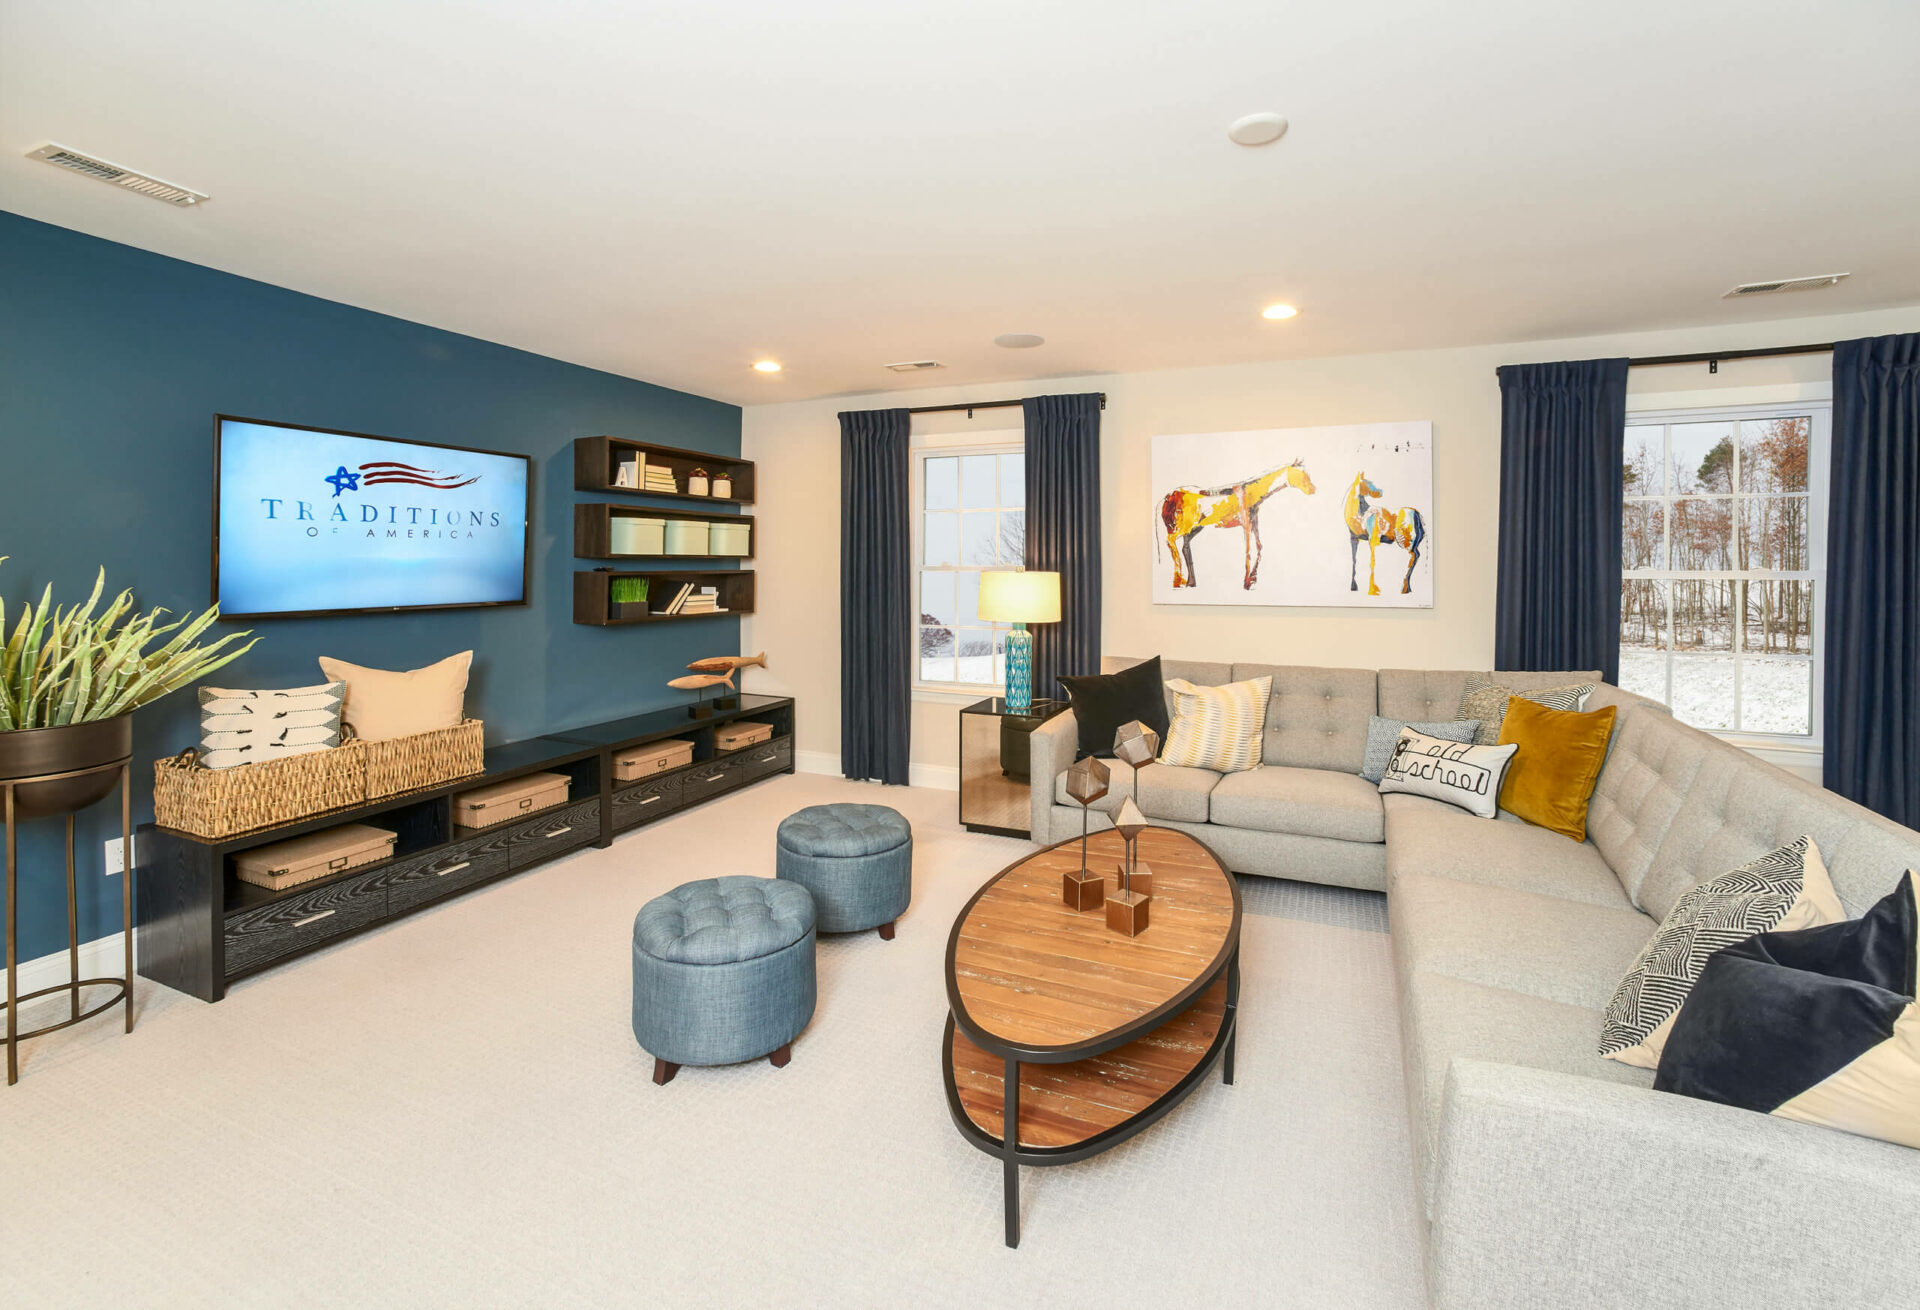 sectional couch in living area